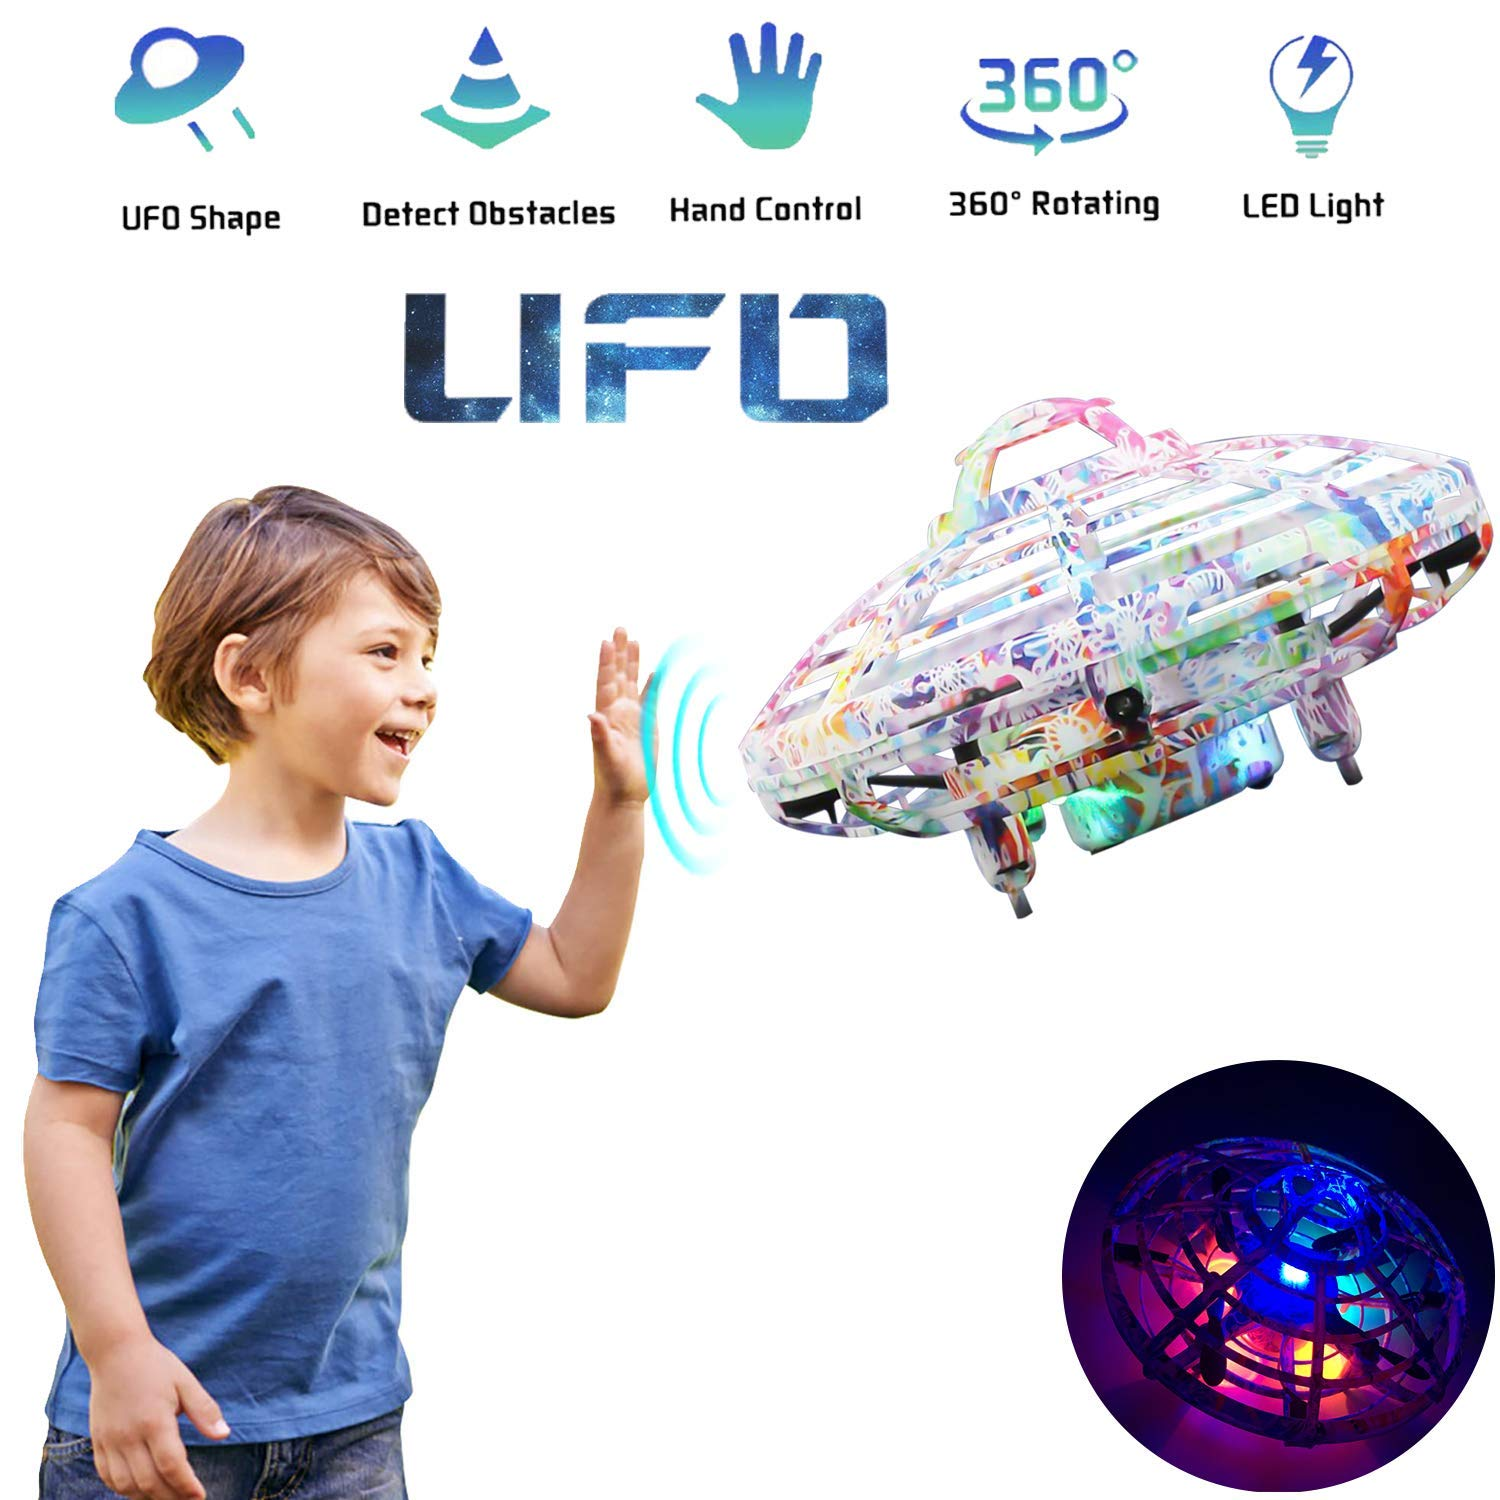 Flying Ball Toy, Cool UFO Hand-Controlled Drone Quadcopter Flying RC Toy for Boys Girls Valentines Gift,Colorful Flashing LED Lights Interactive Infrared Induction Helicopter Ball with 360Rotating by FUNSEA (Image #1)